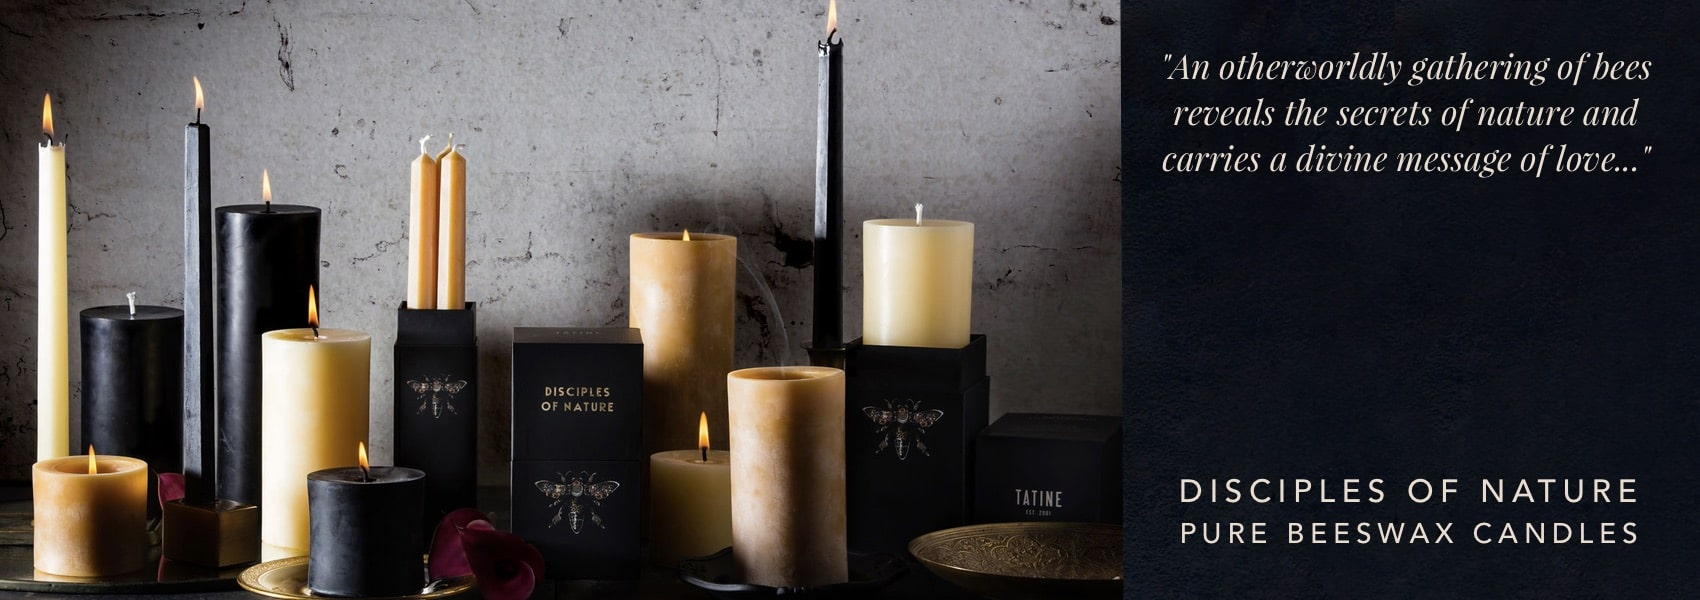 Tatine Disciples of Nature Pure Beeswax Candles